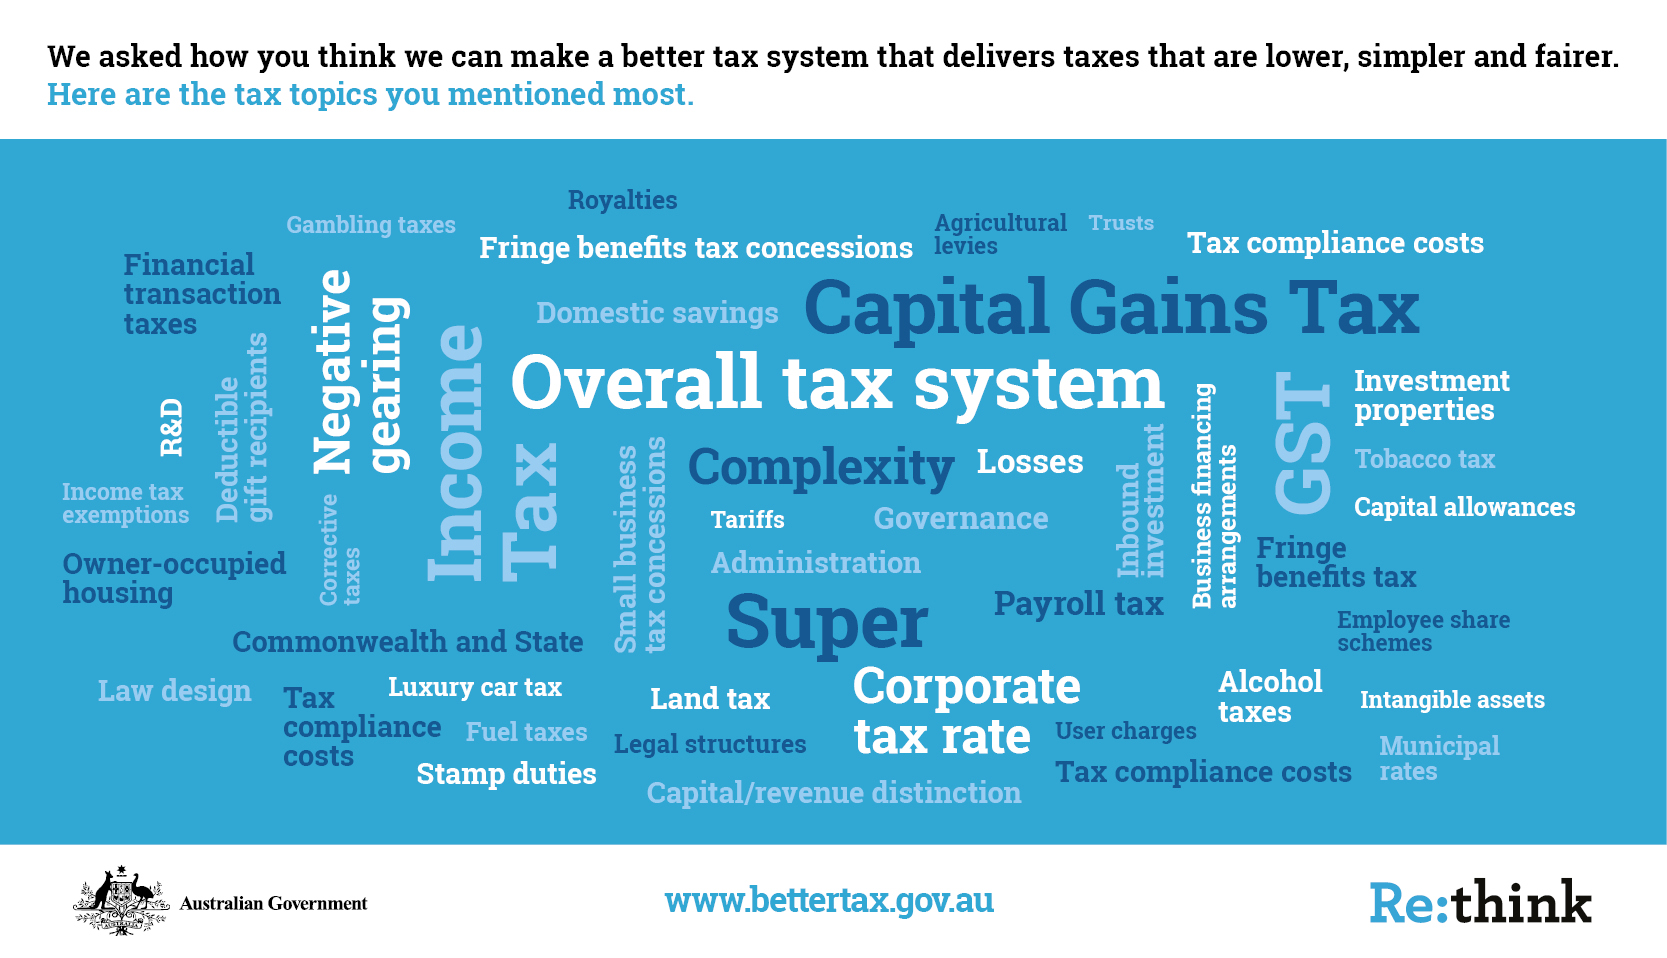 Which tax topics were mentioned the most?